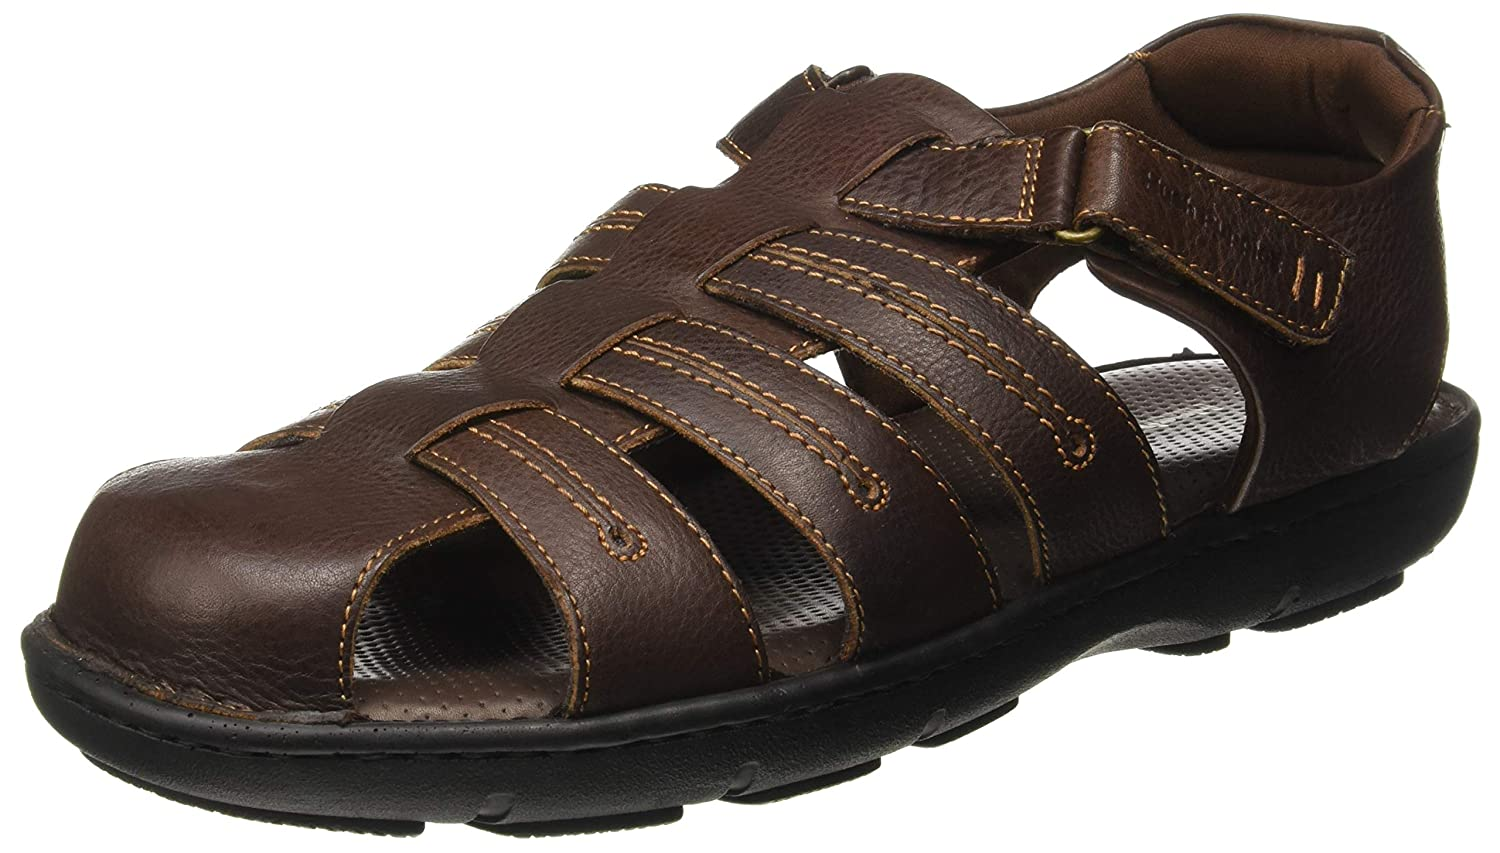 Hush Puppies Men's Track highly rated Sandals under 3000